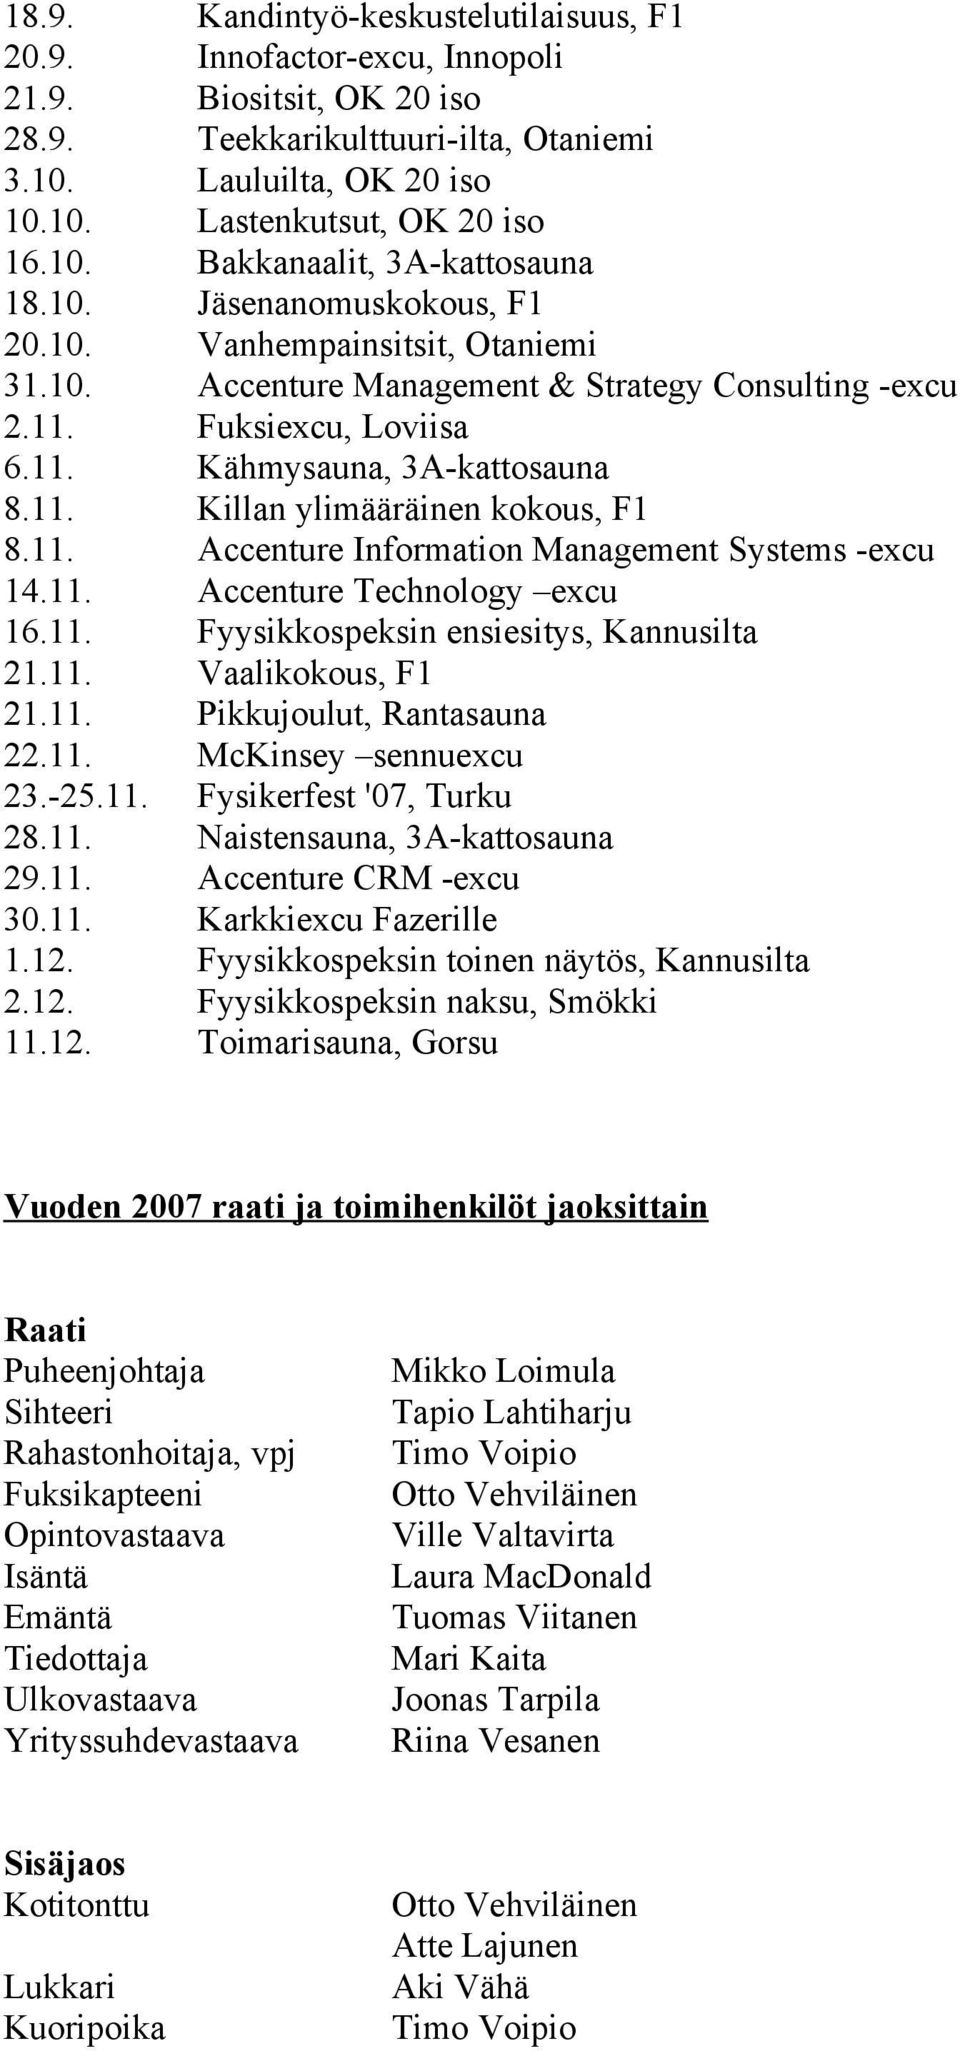 11. Killan ylimääräinen kokous, F1 8.11. Accenture Information Management Systems -excu 14.11. Accenture Technology excu 16.11. Fyysikkospeksin ensiesitys, Kannusilta 21.11. Vaalikokous, F1 21.11. Pikkujoulut, Rantasauna 22.